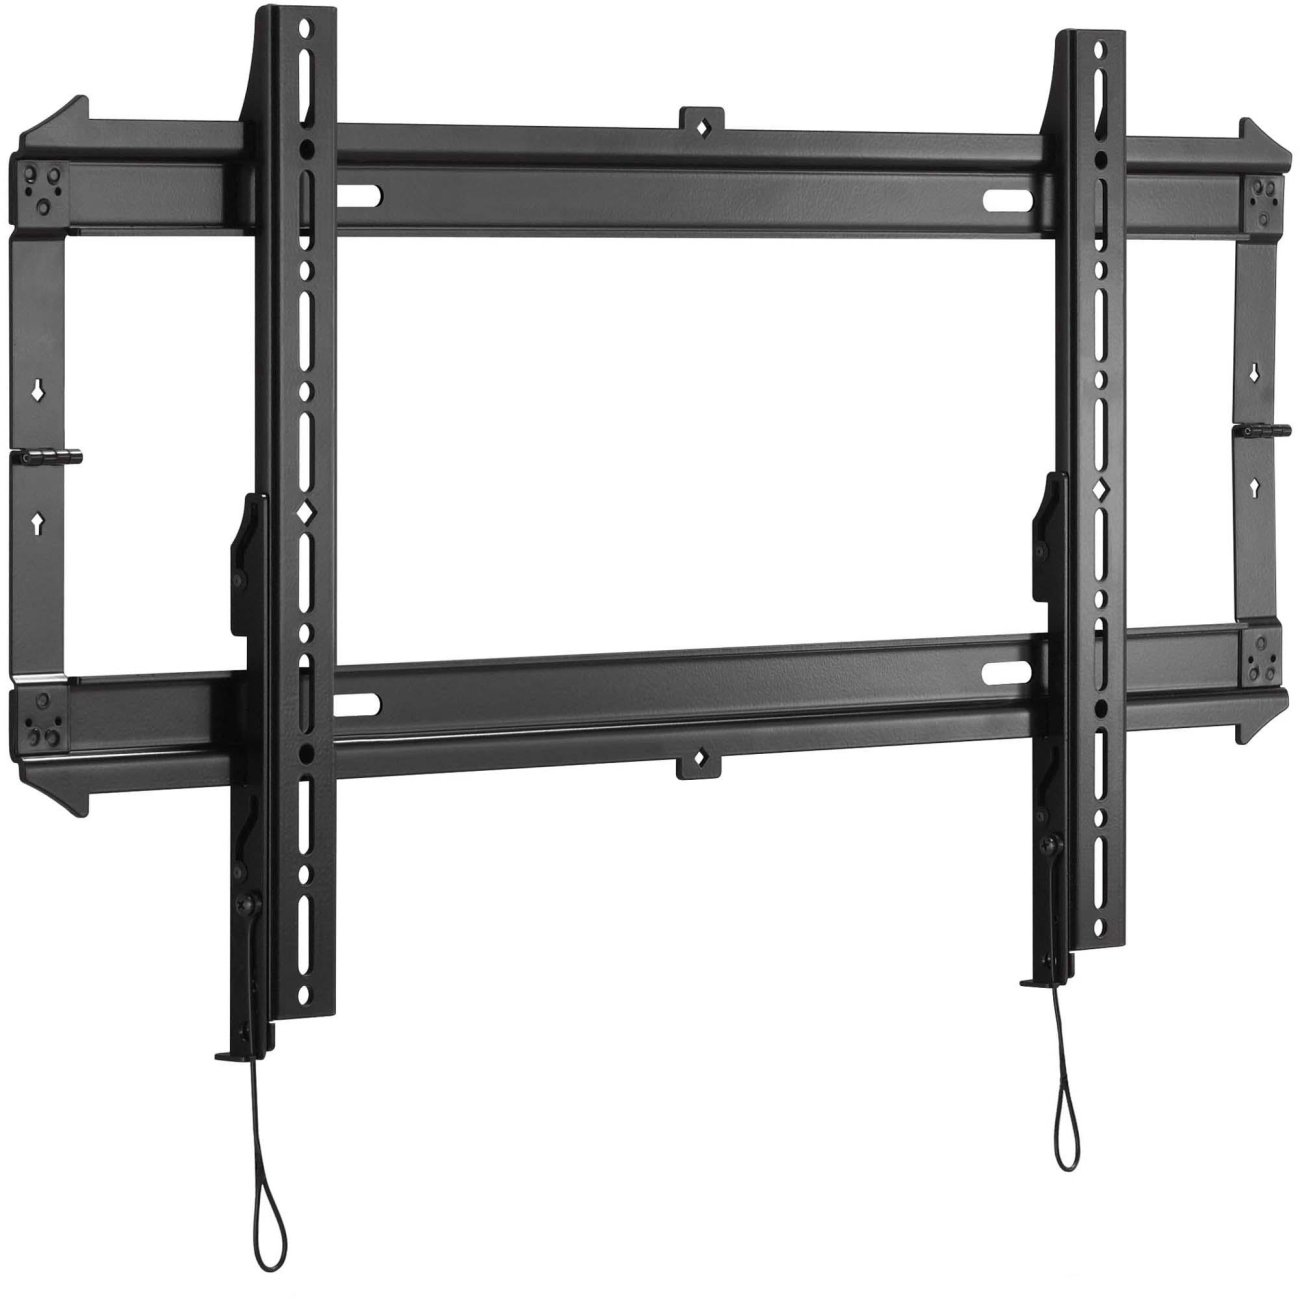 Chief FIT Series Low-Profile Hinge Mount RLF2 - Mounting kit ( wall plate, 2 brackets ) for LCD display - black - screen size: 32